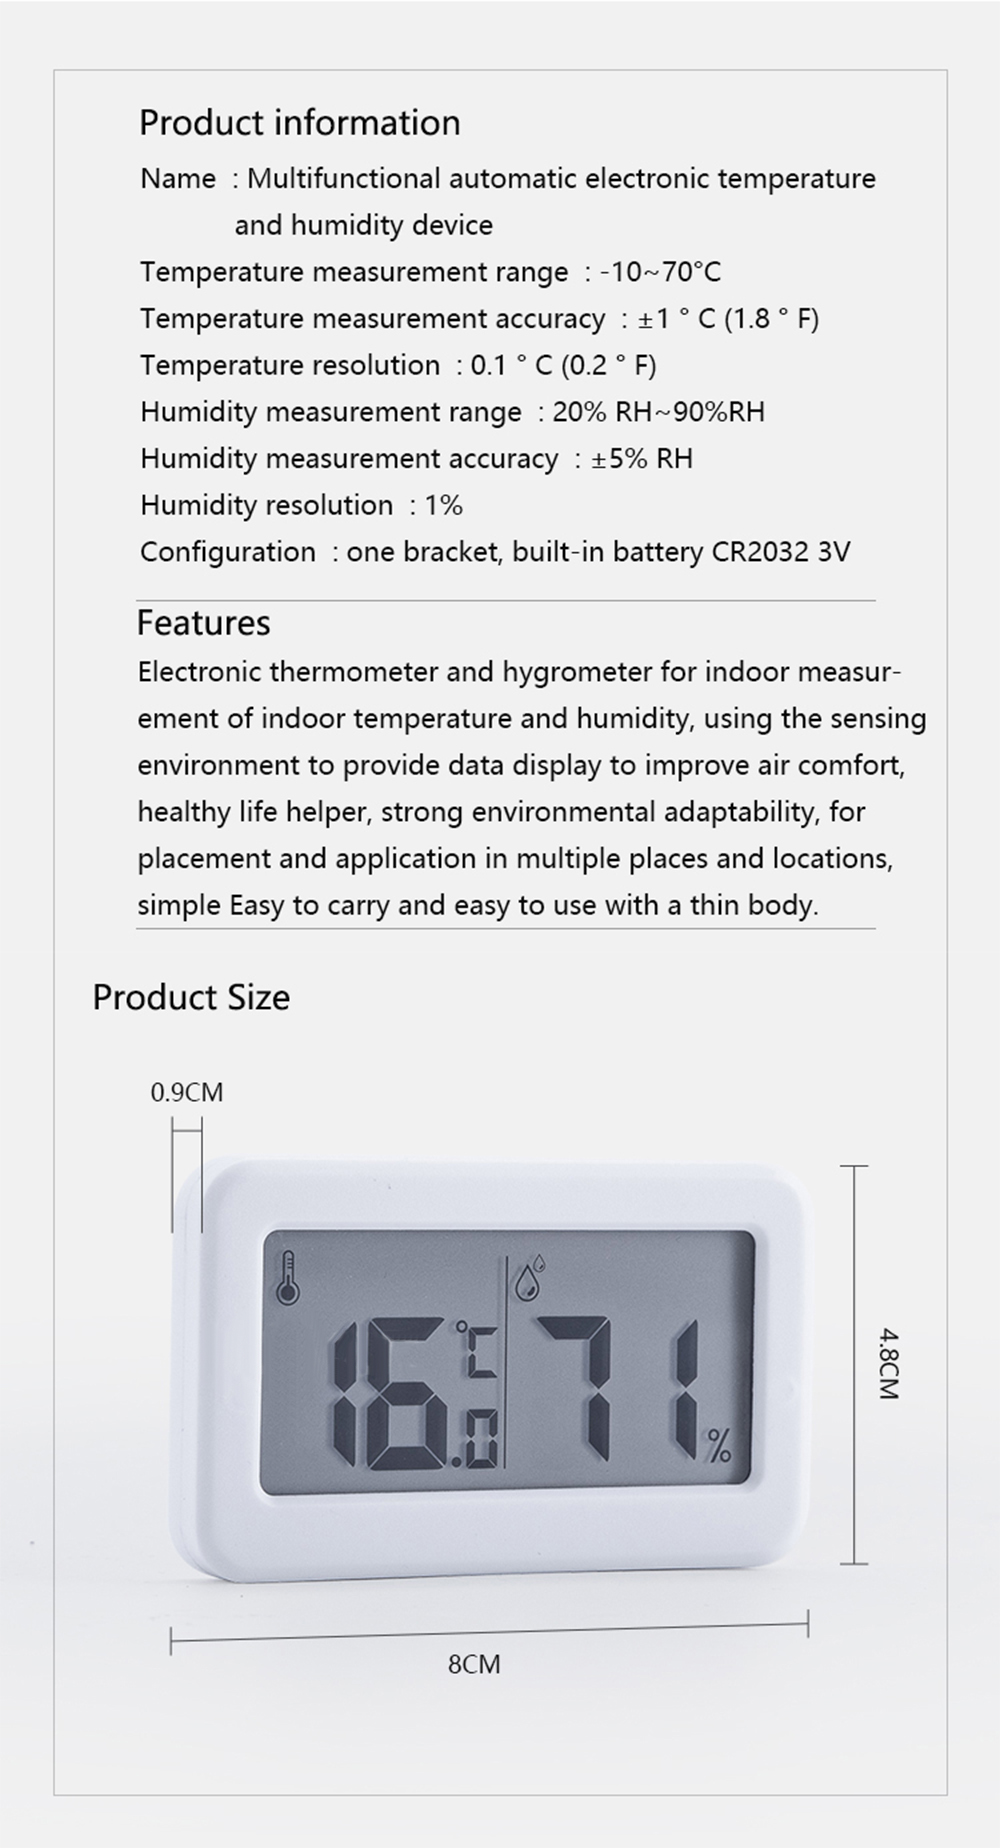 PANDUN Ultra-thin Multifunctional Electronic Digital Hygrothermograph Home Thermometer Hygrometer Indoor Temperature Humidity Monitor for Baby Room from Xiaomi Youpin